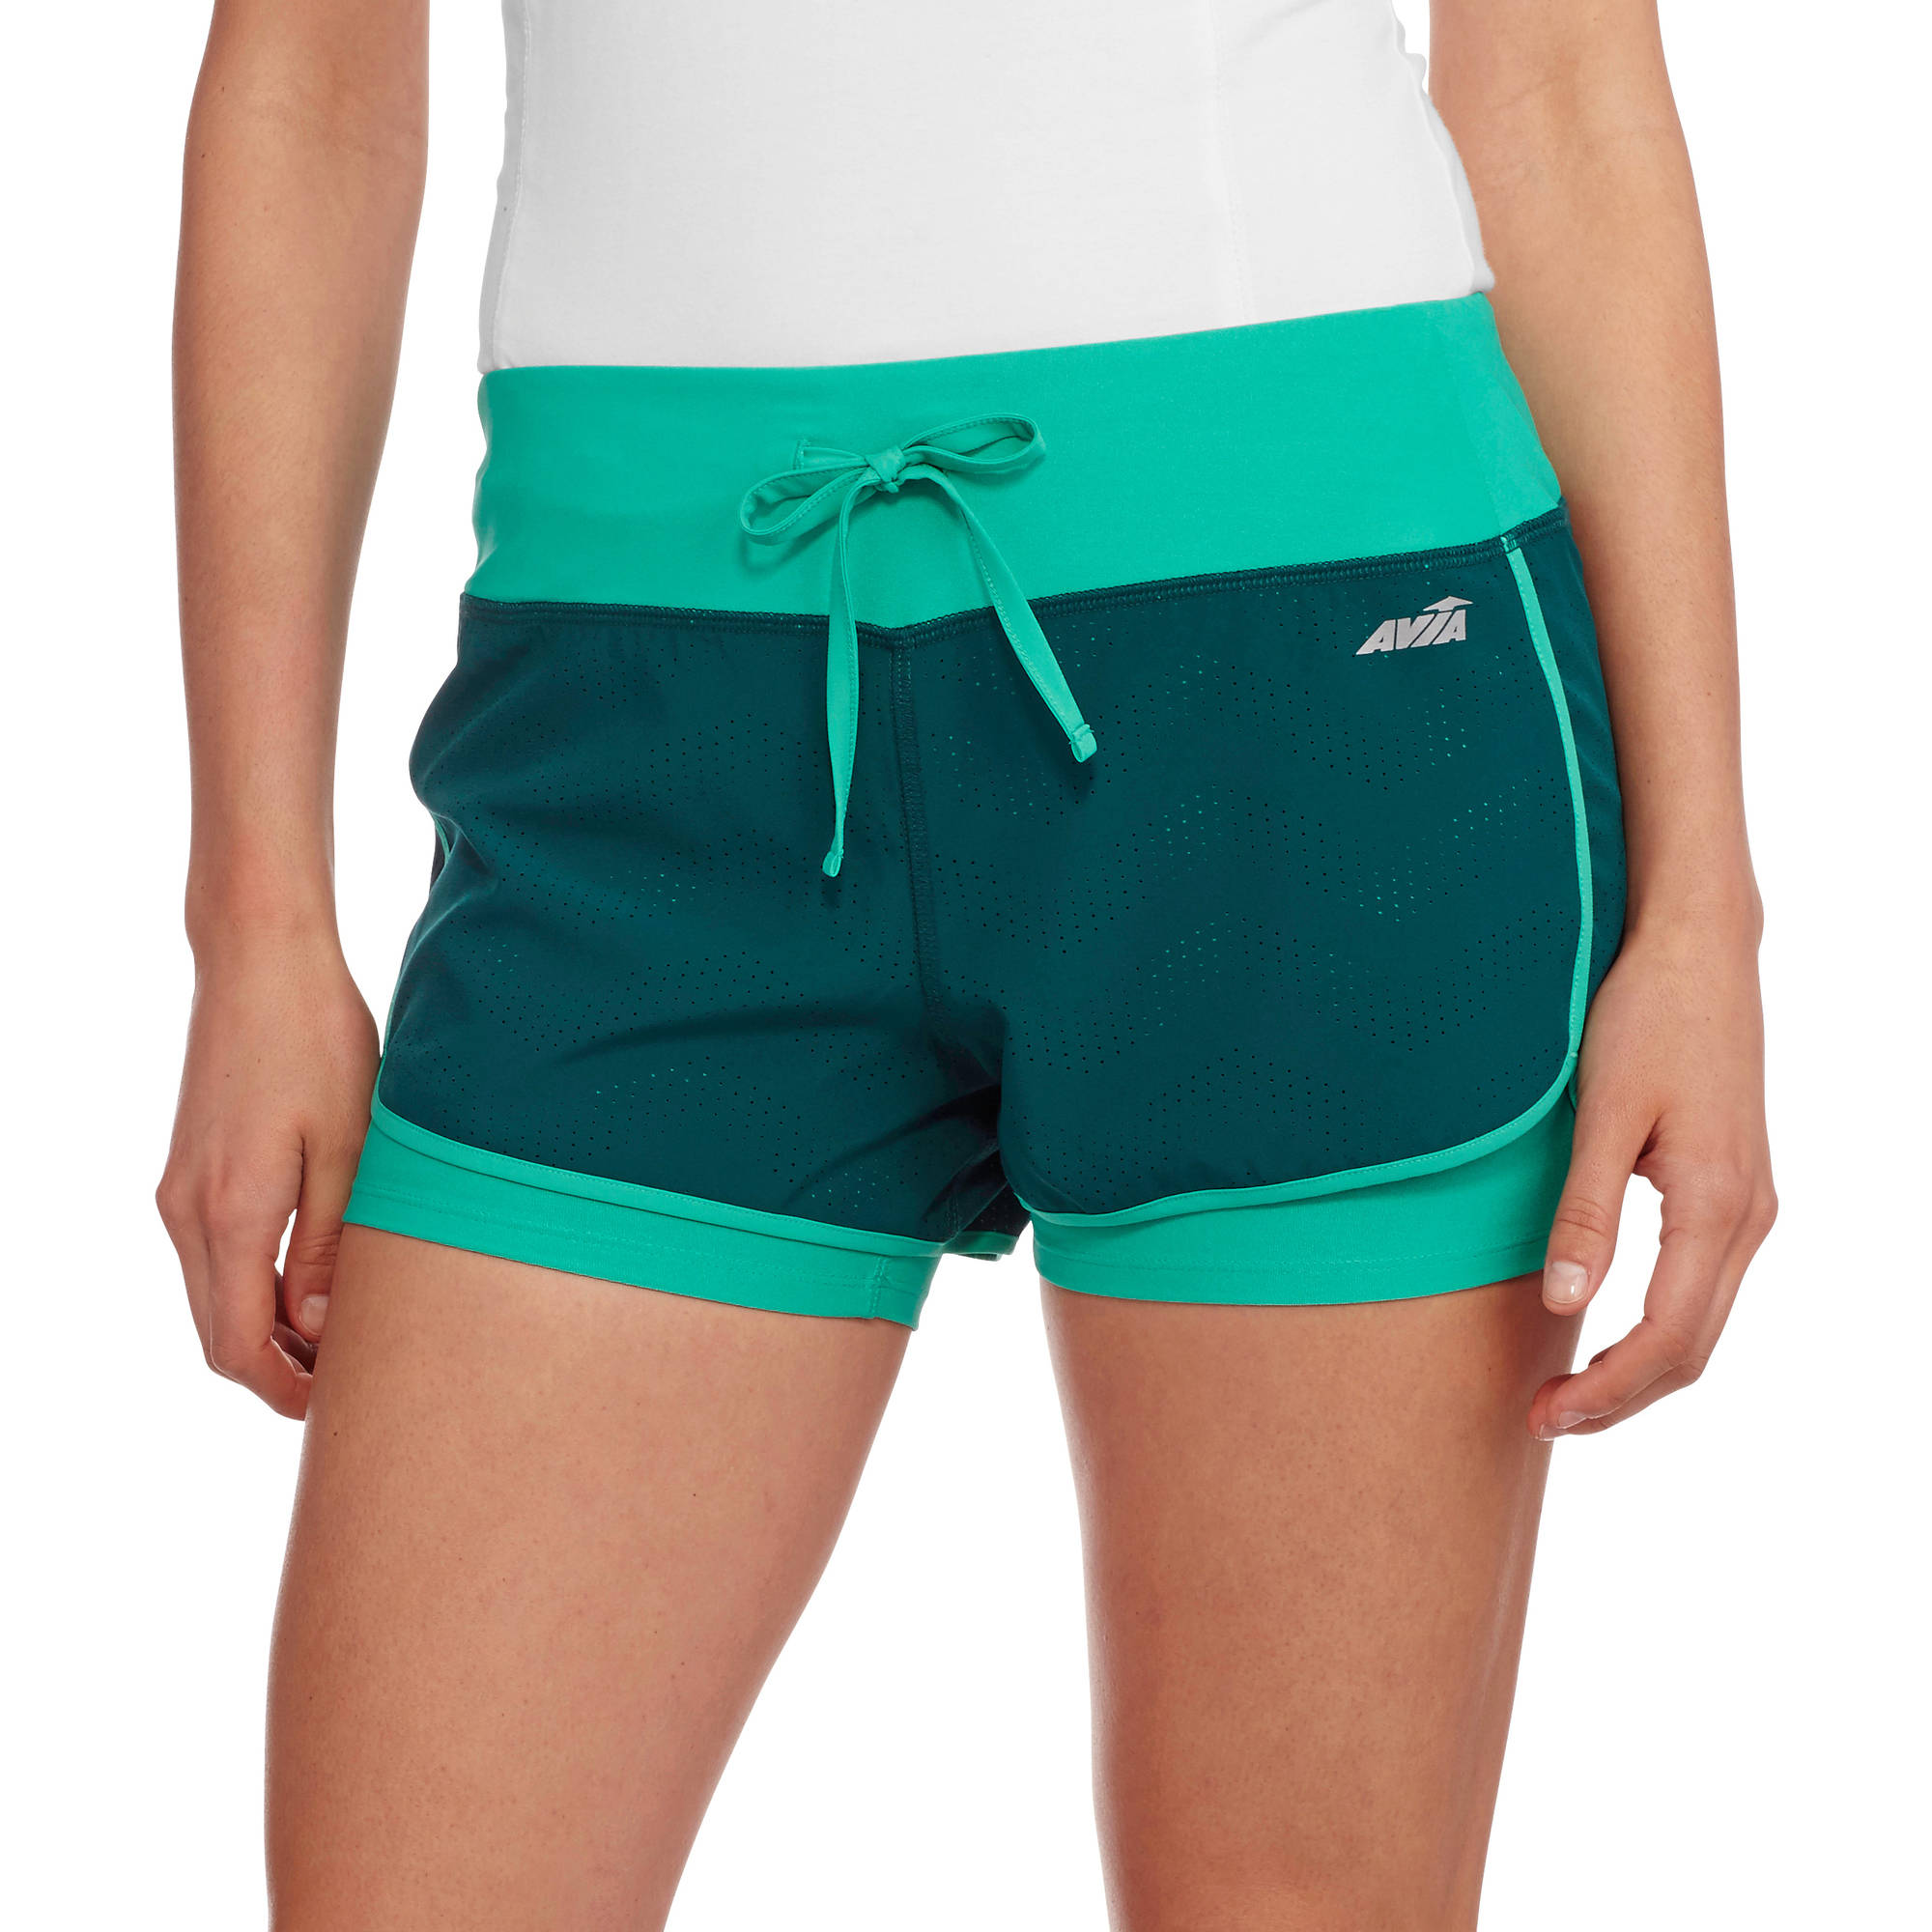 avia s performance running shorts with built in